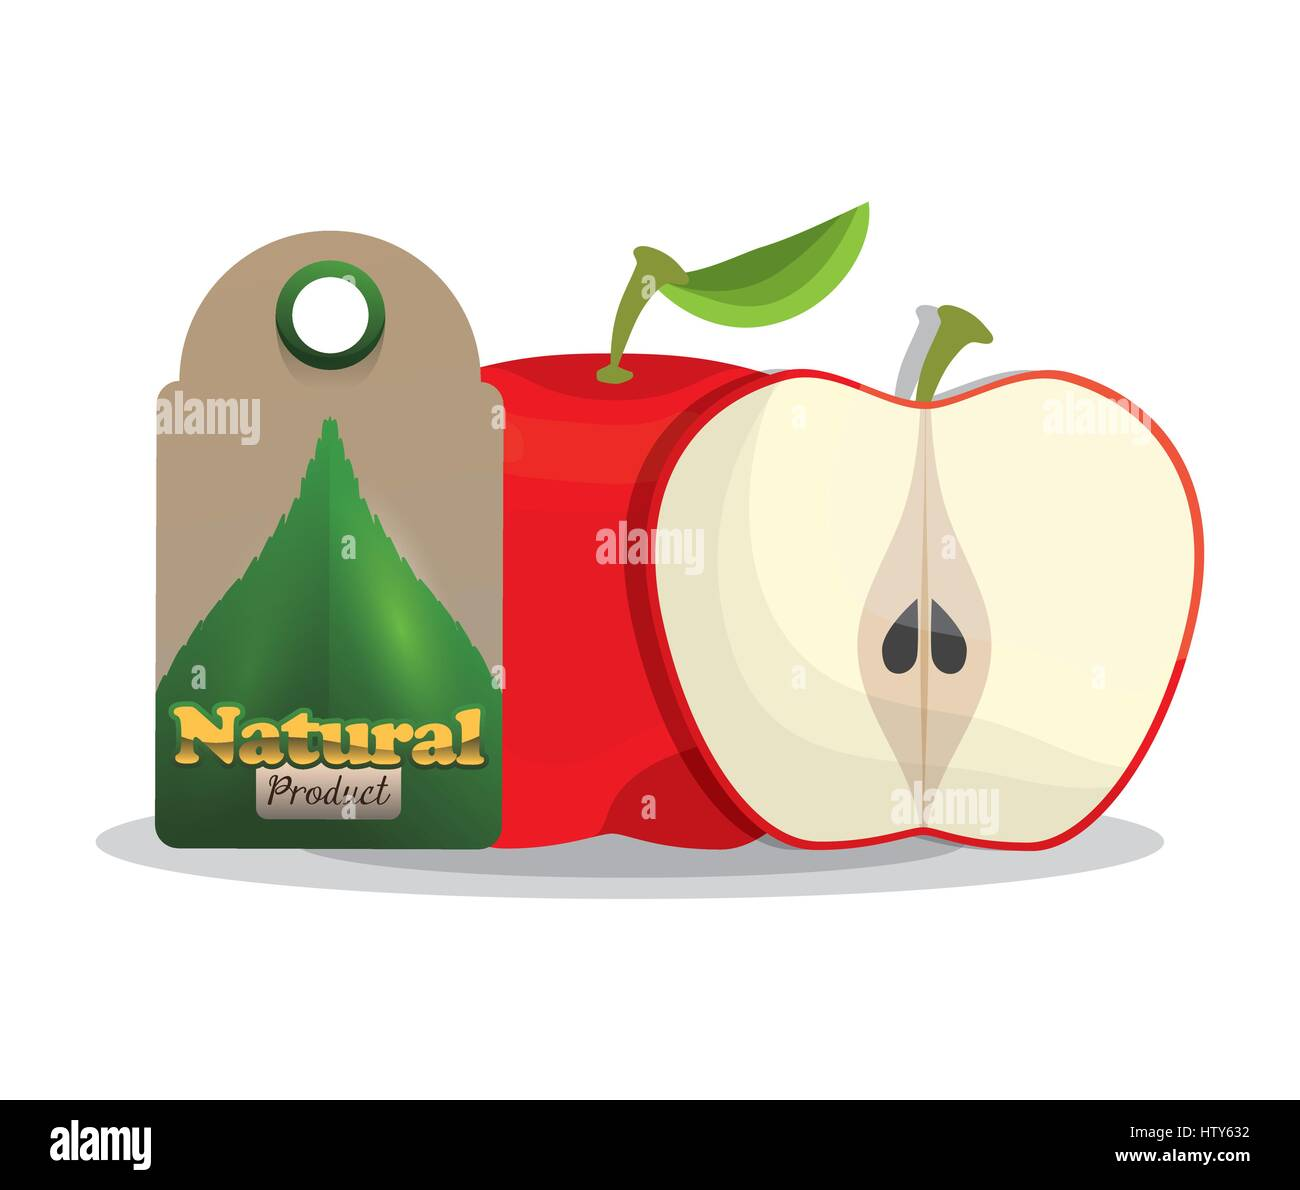 apple natural product tag market - Stock Vector